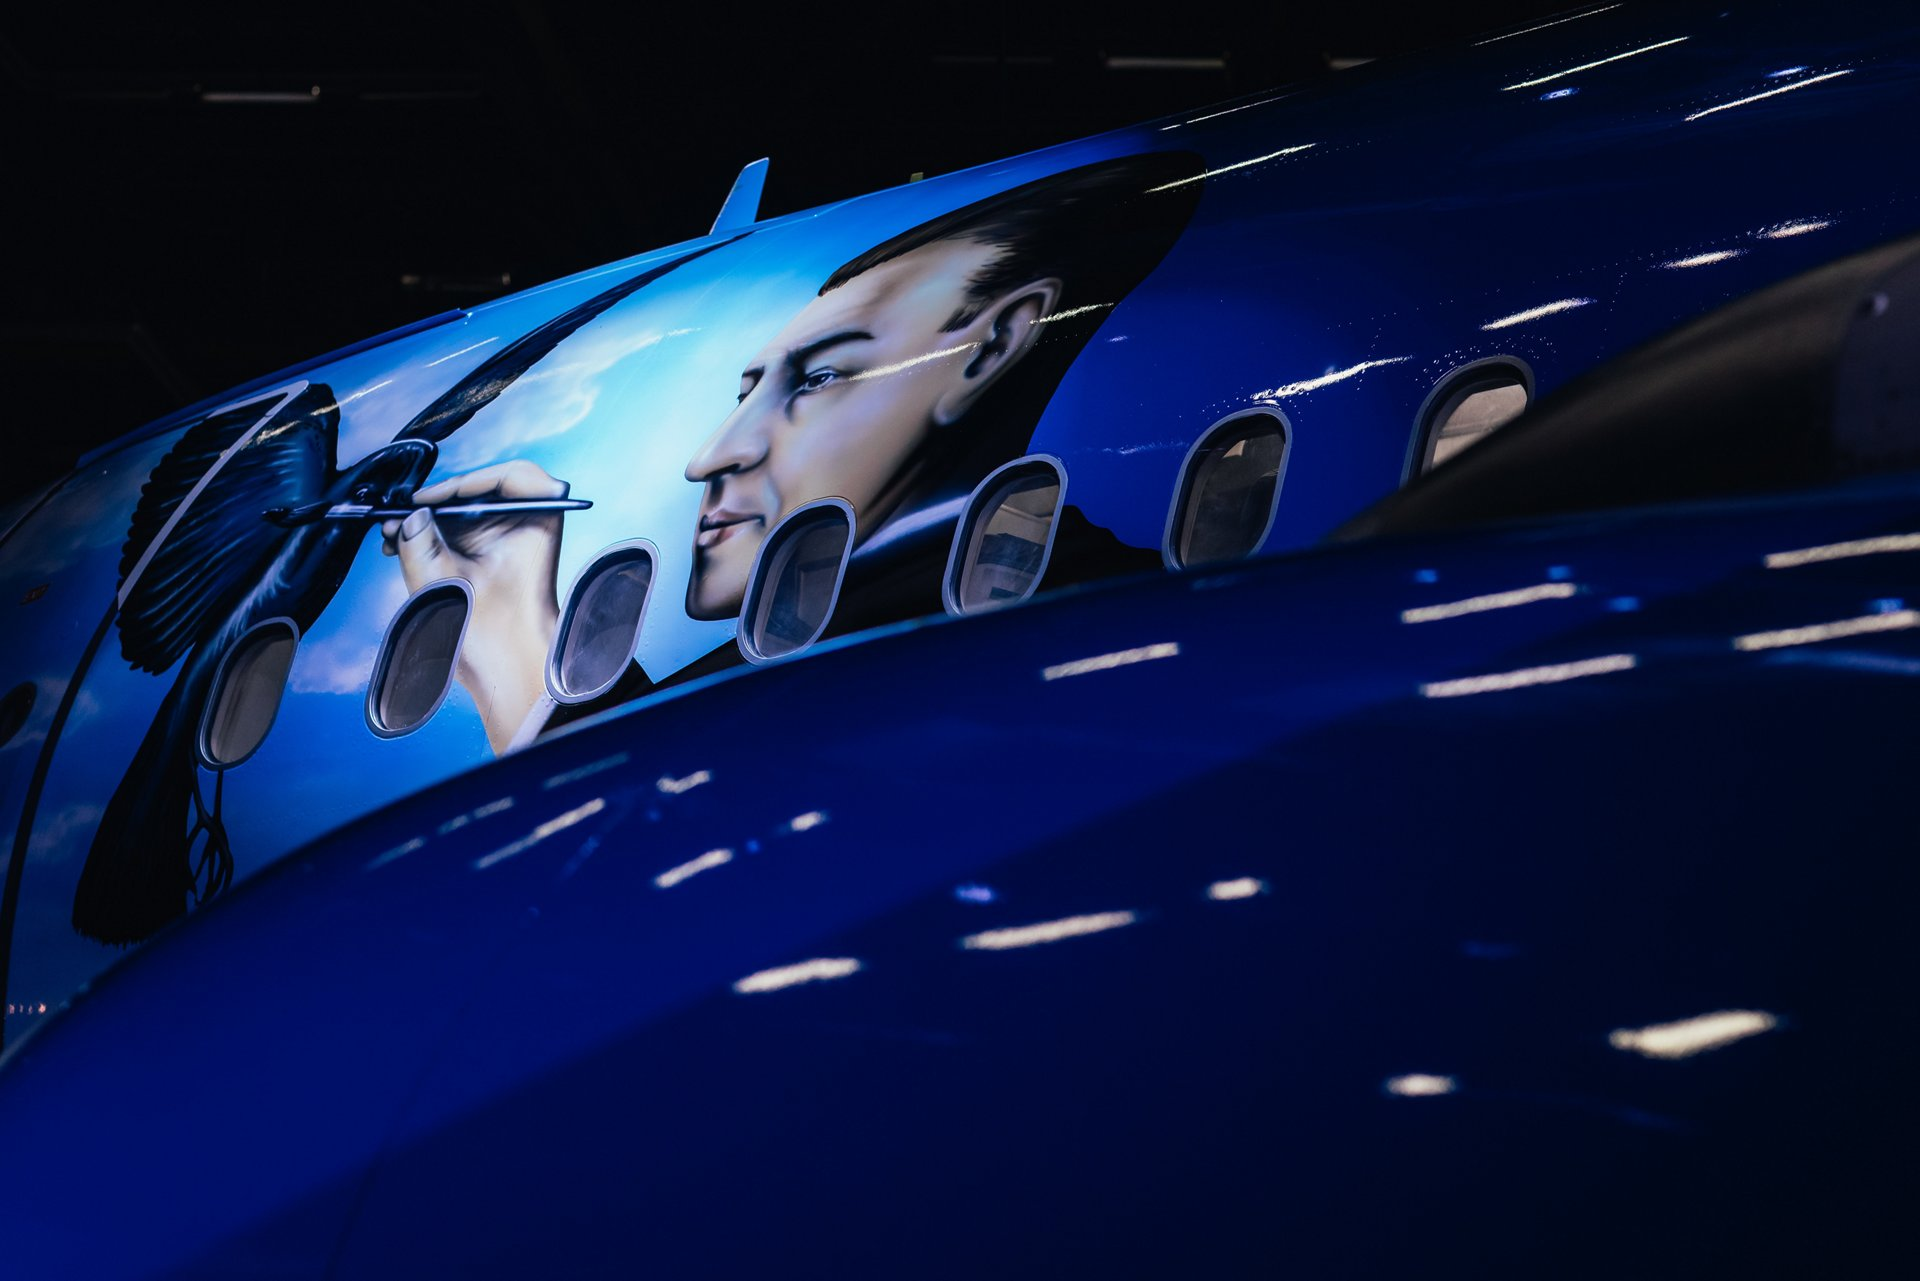 A320_Brussels Airlines Magritte 3